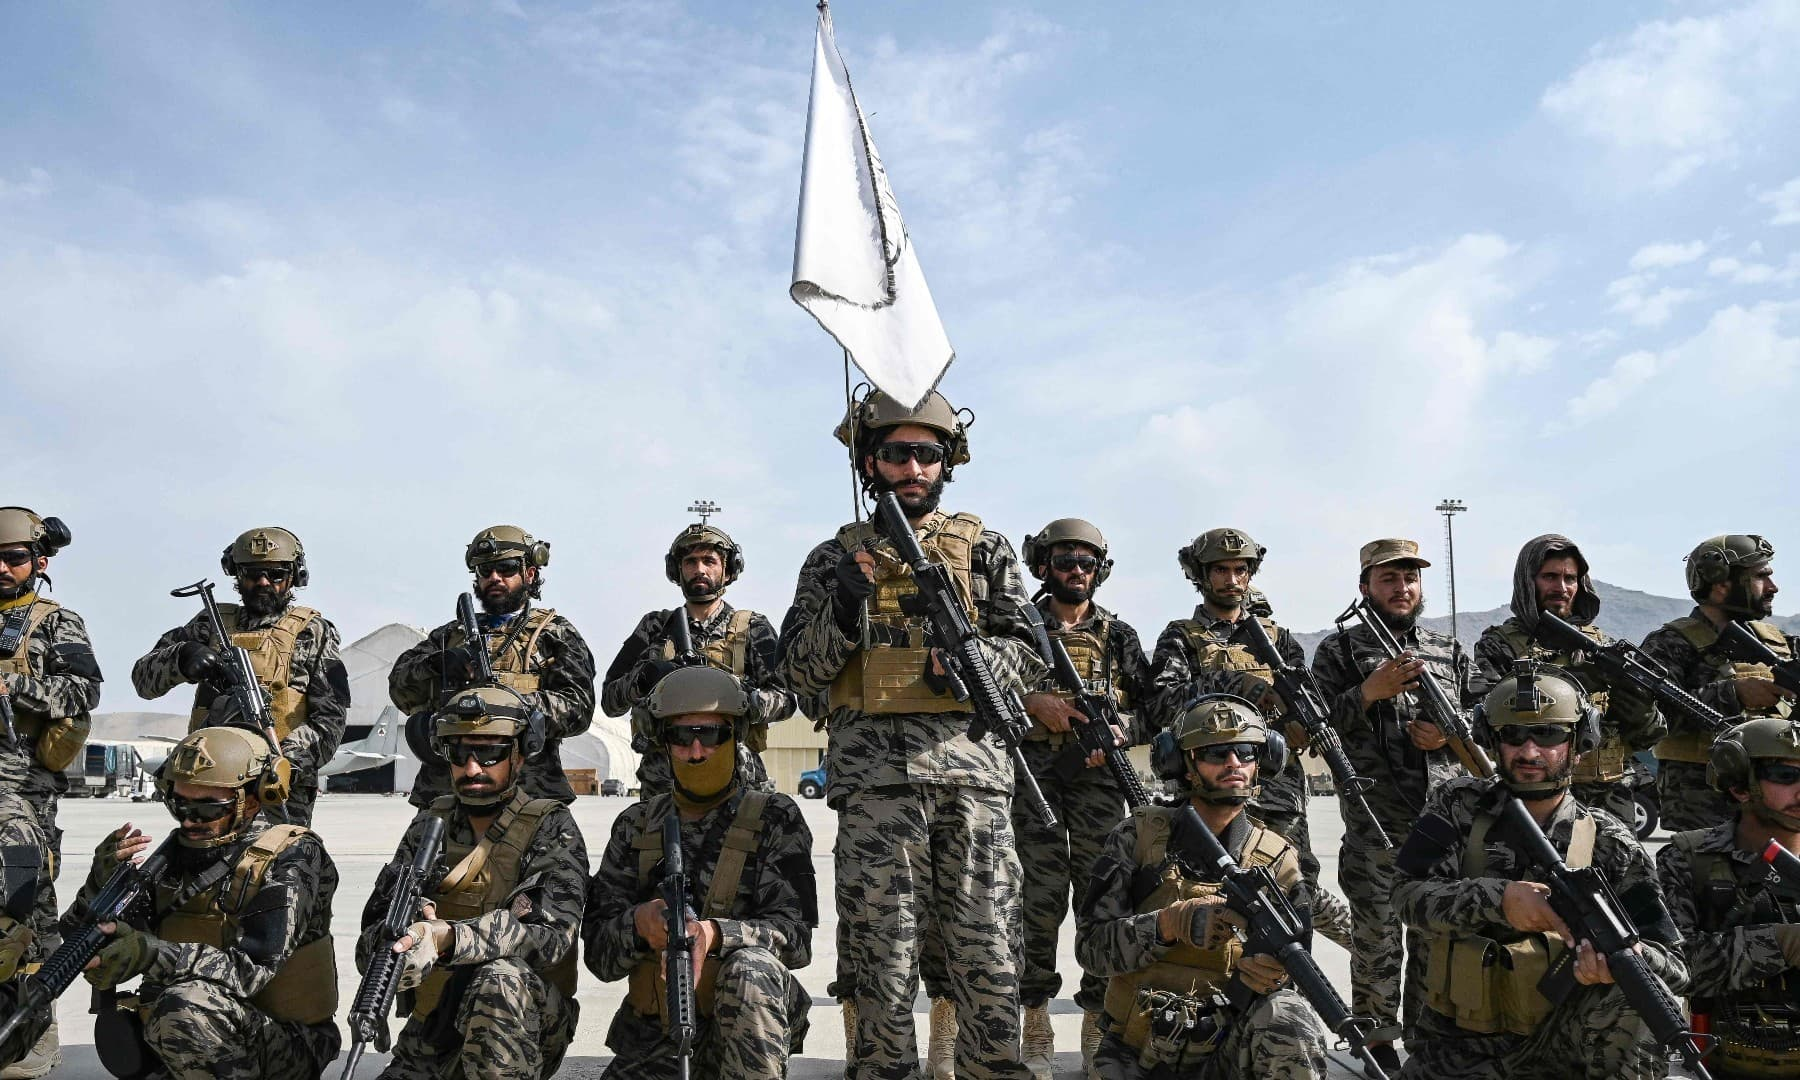 Taliban Badri special force fighters take a position at the airport in Kabul on August 31. — AFP